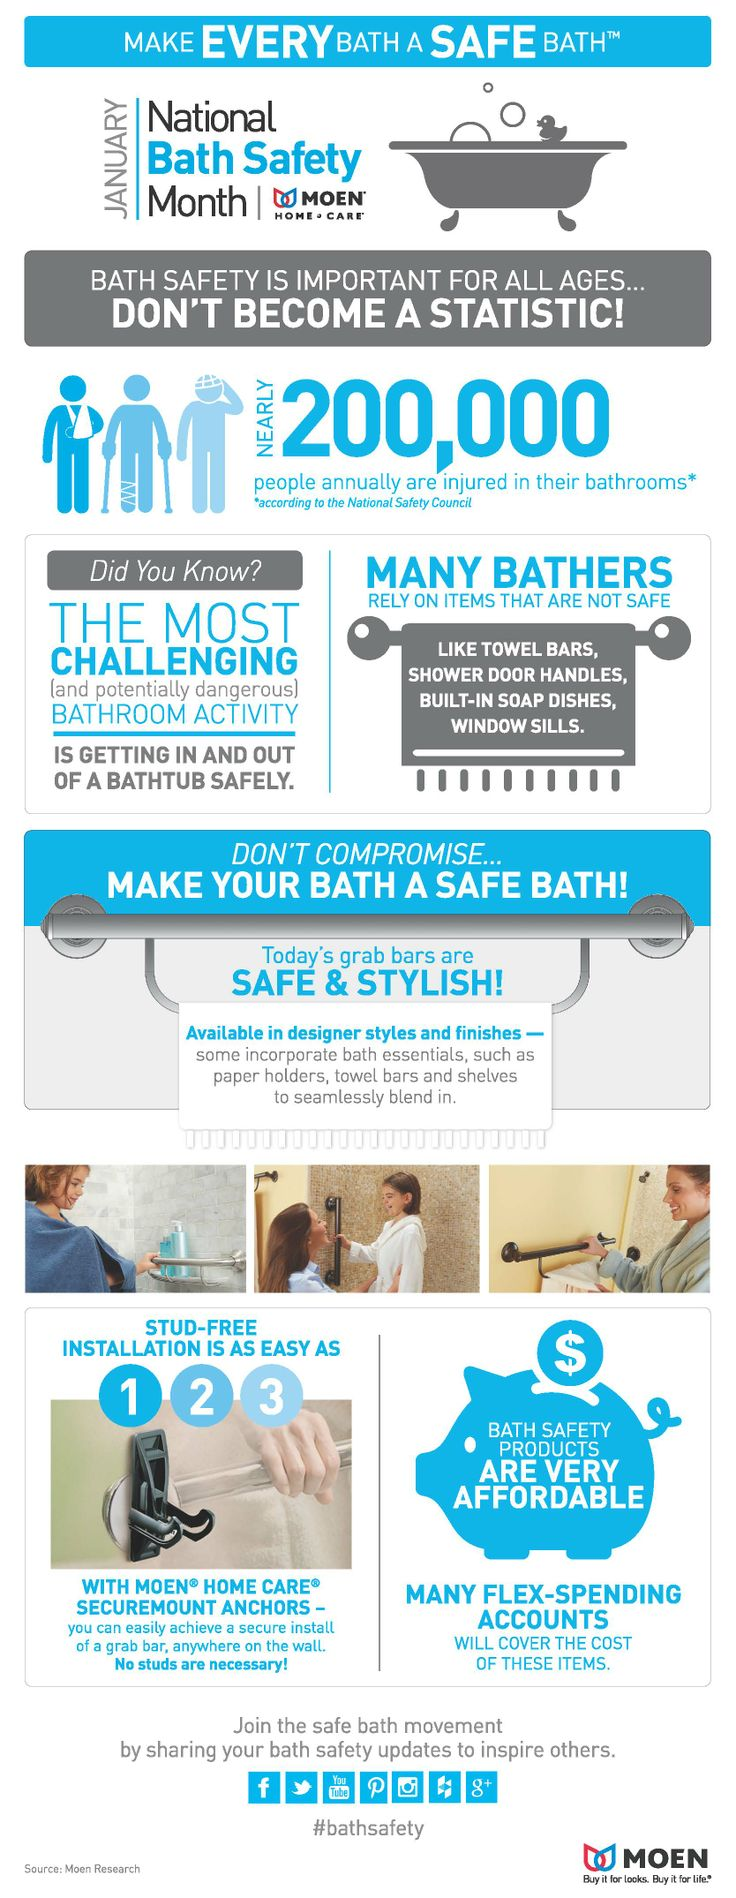 Moen Helps Make Every Bath A Safe Bath!   Obviously Marvelous